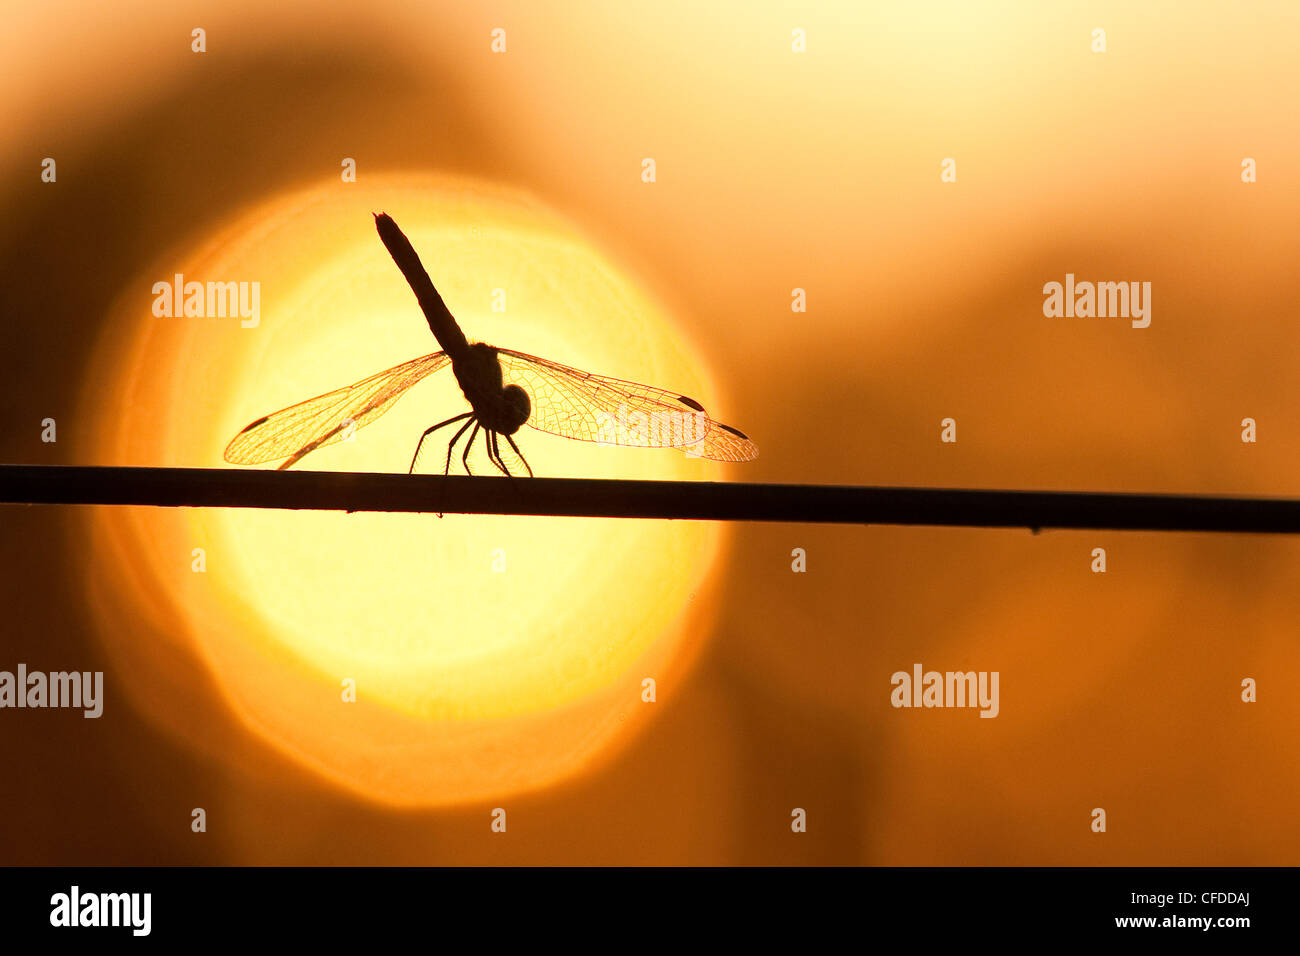 Dragonfly settling on a wire fence at sunset, Southwestern Brazil, South America - Stock Image